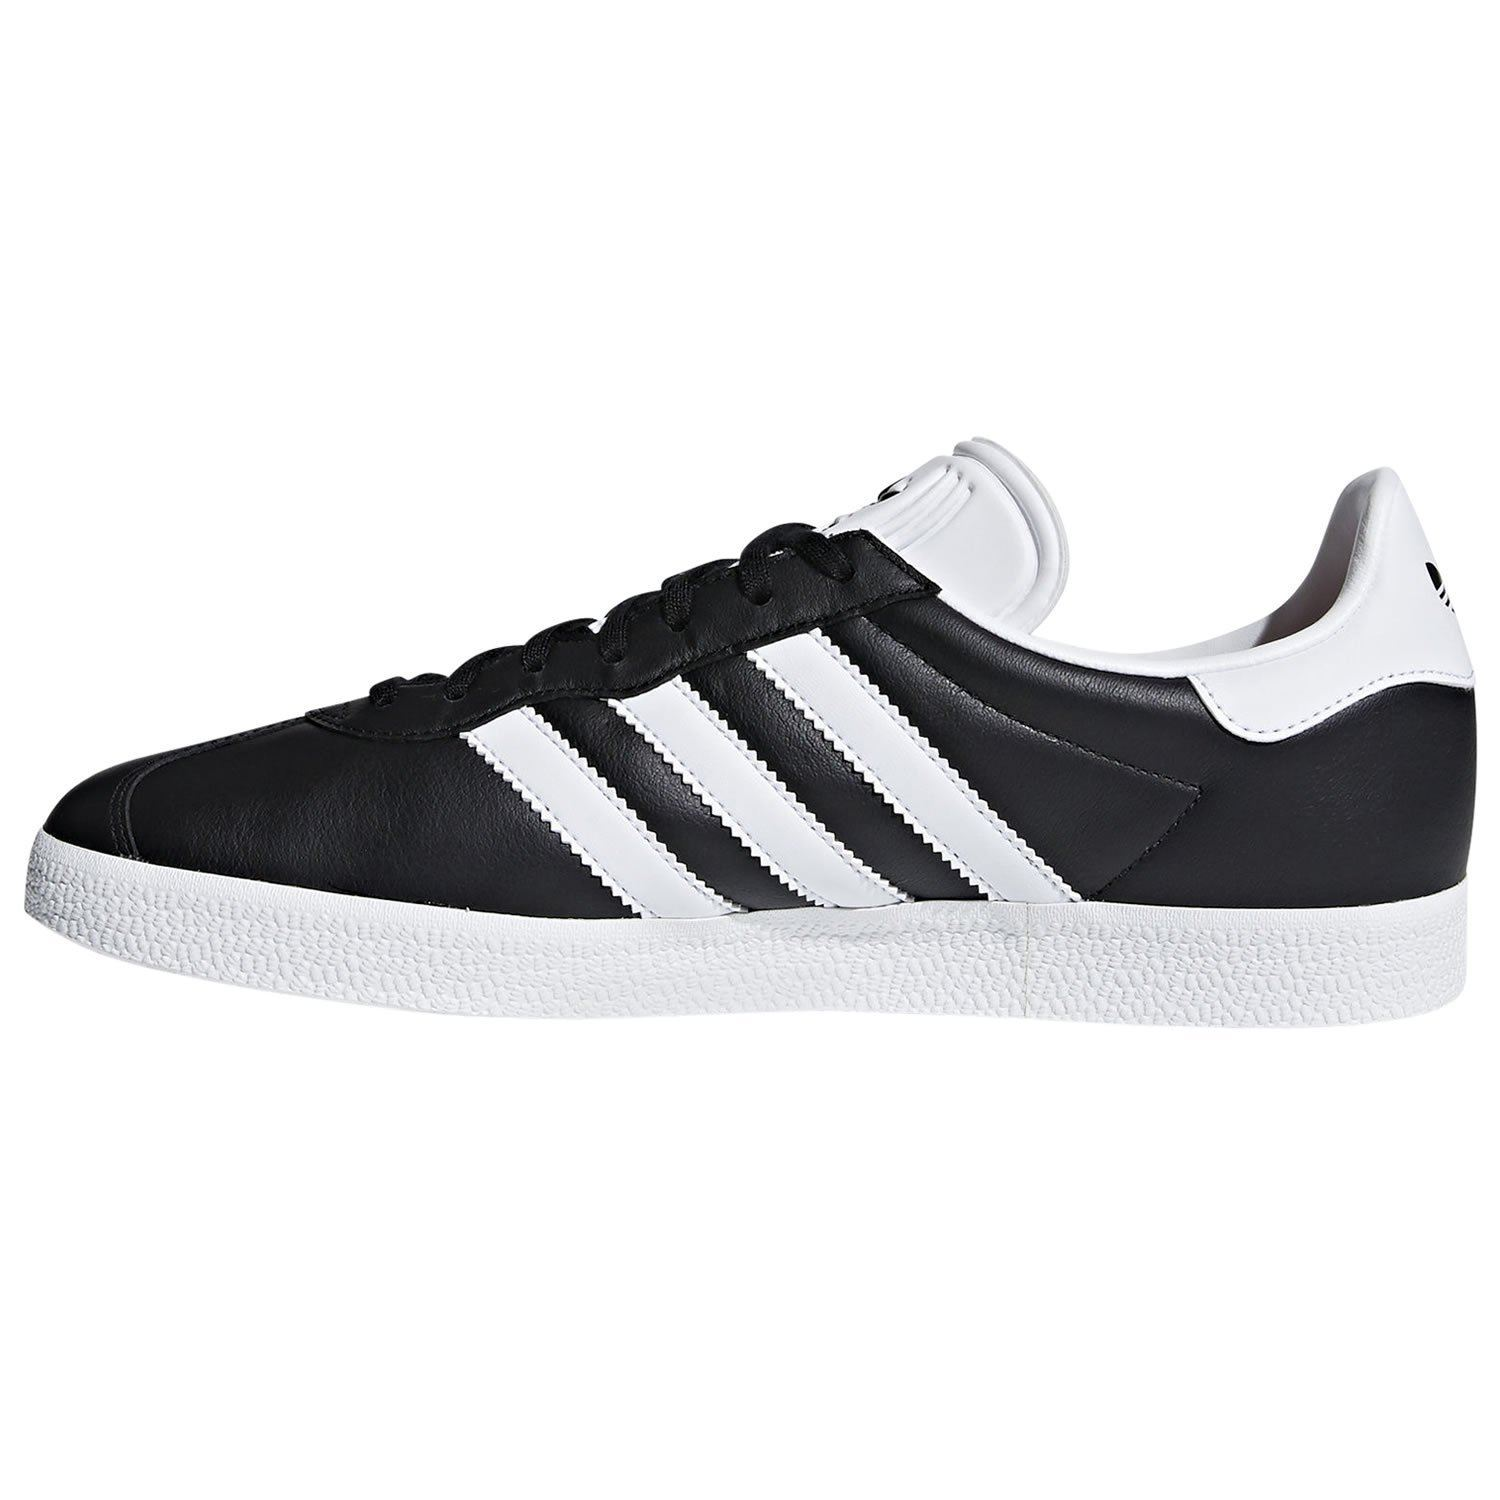 online store 7075f e15ad adidas ORIGINALS WORLD CUP GAZELLE SUPER SHOES BLACK TRAINERS SNEAKERS KICKS